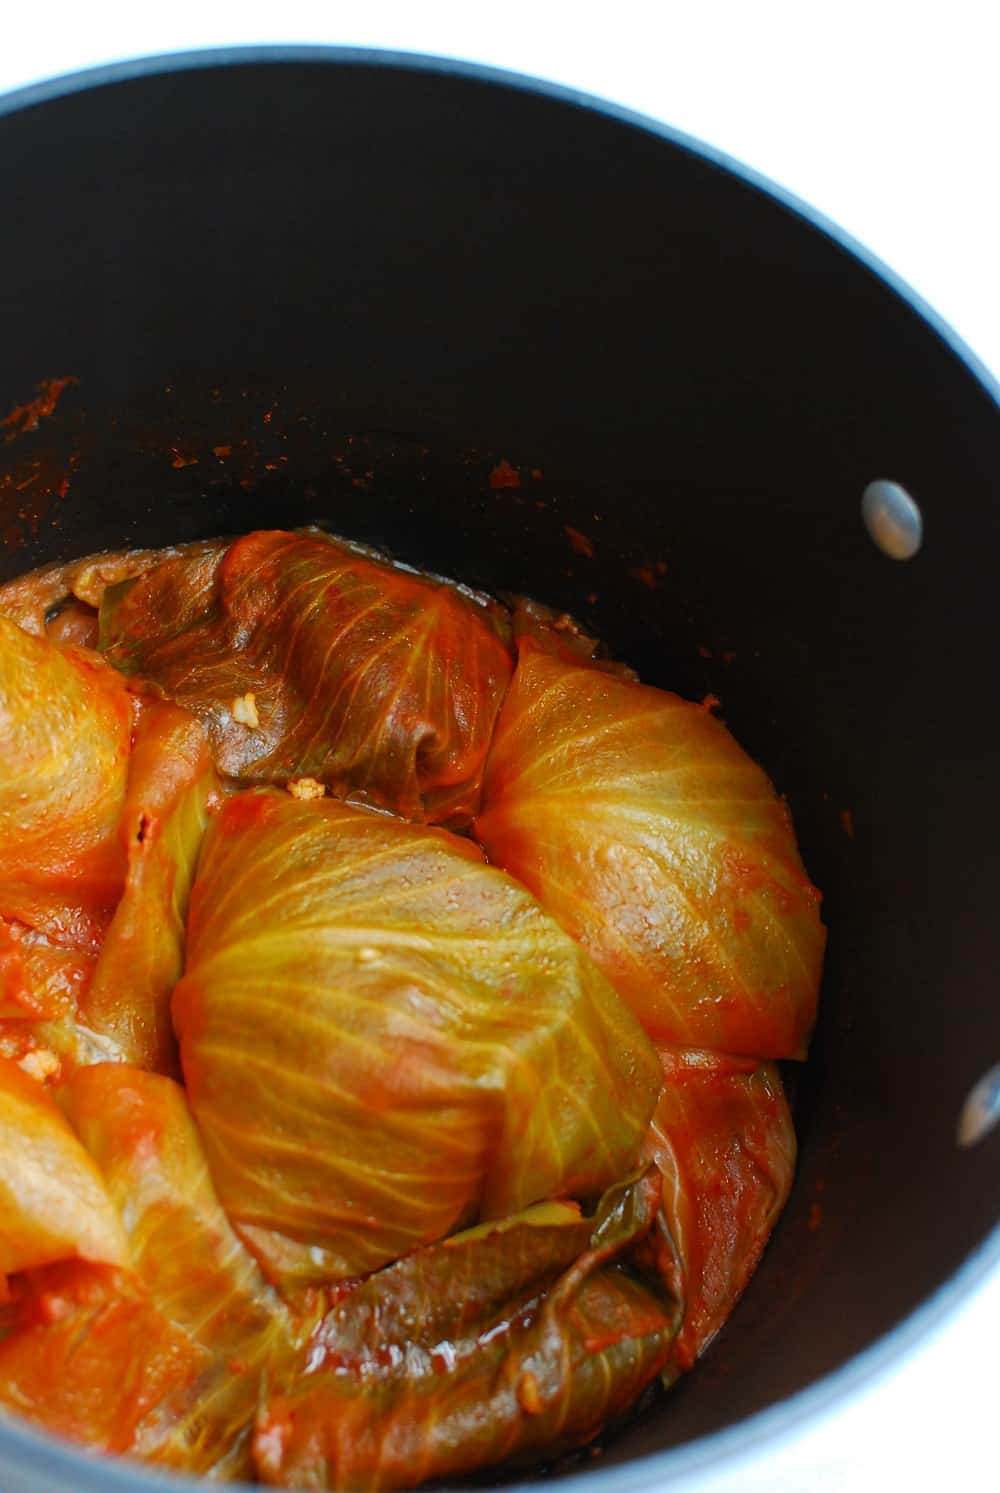 Stuffed cabbage rolls in a pot after cooking